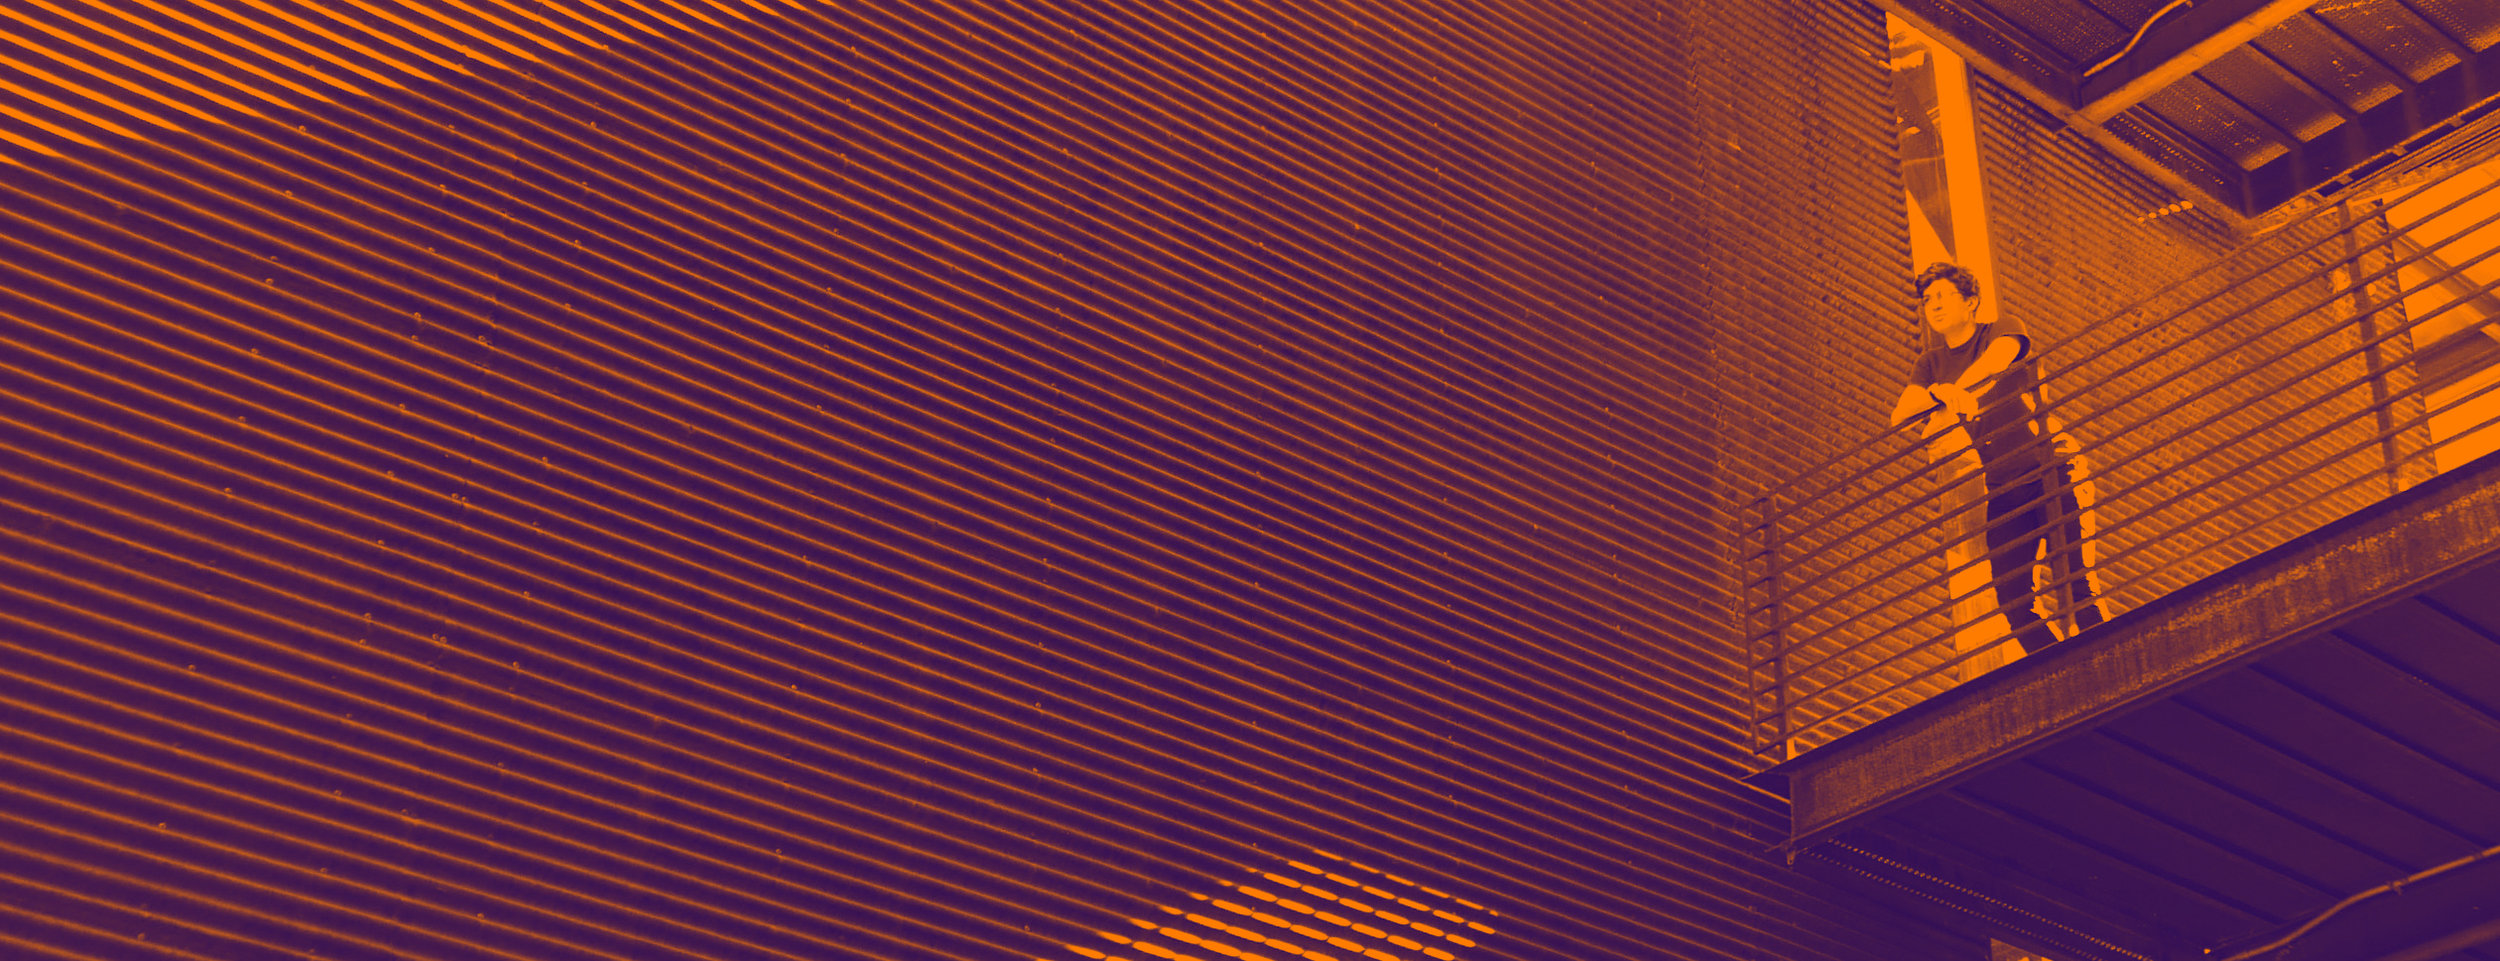 L1950766 GRADIENT MAP SAM 500x1300pix.jpg